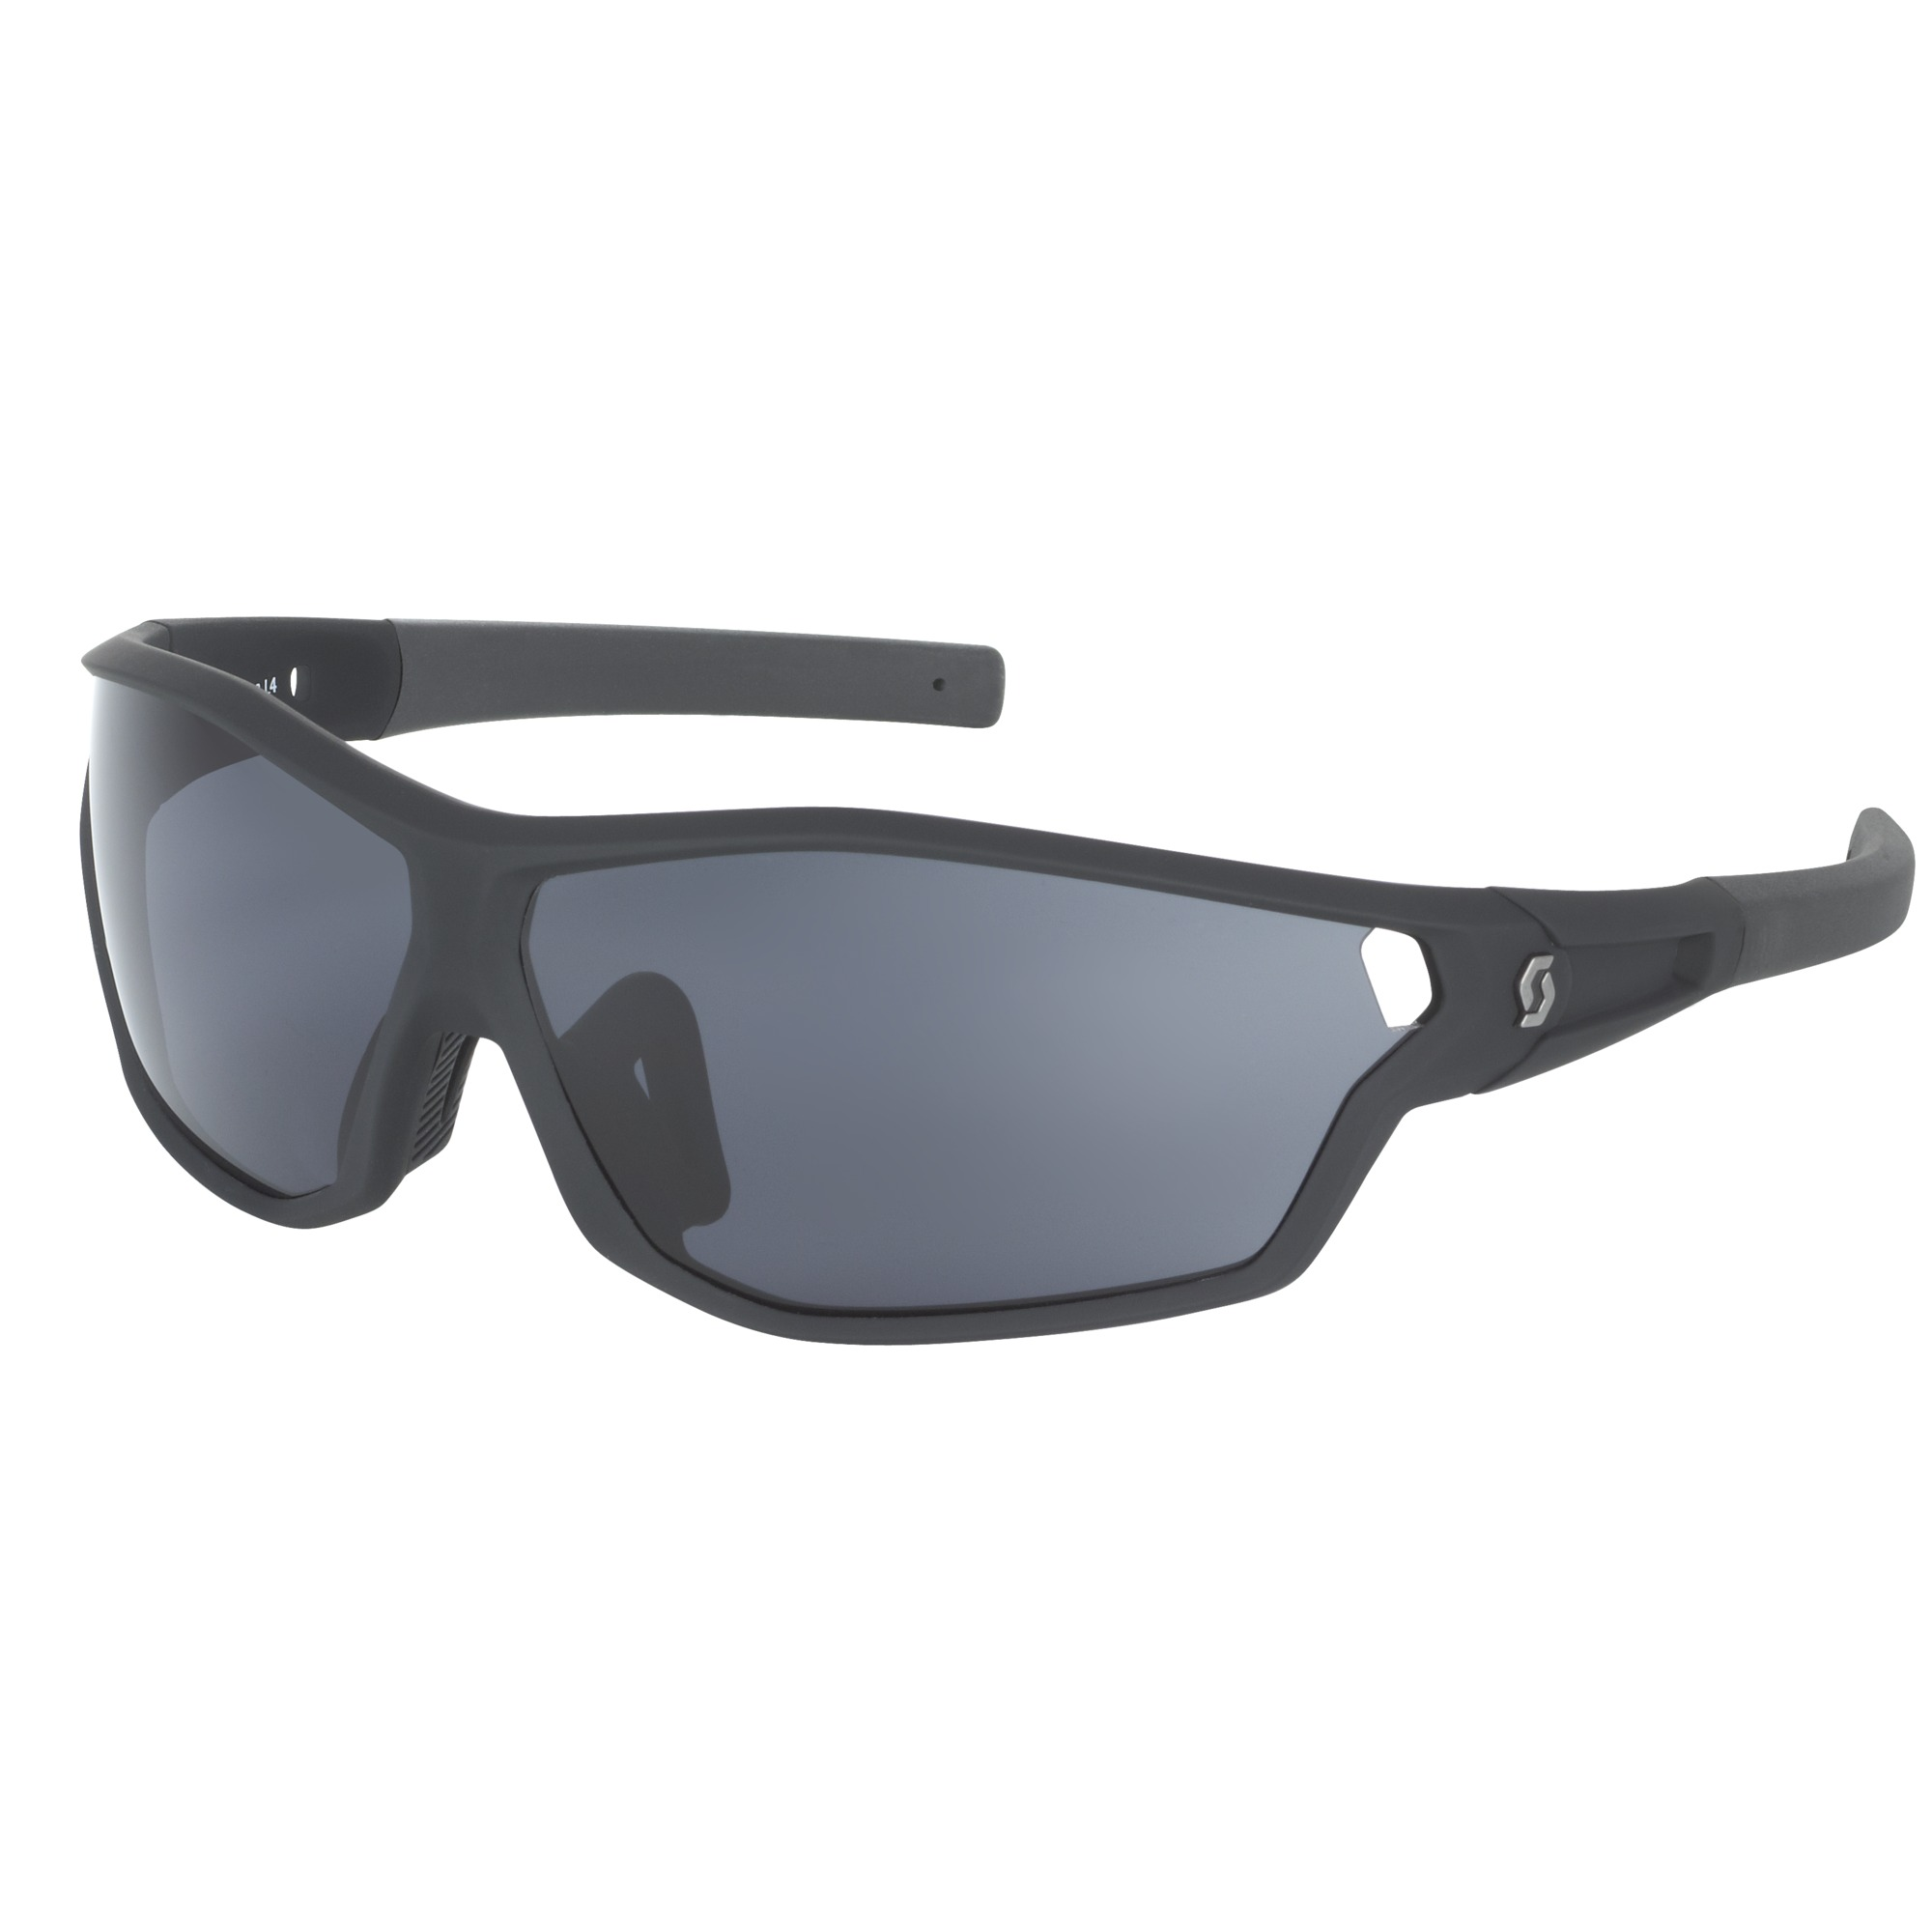 OCCHIALE SPORTIVO SCOTT LEAP FULL FRAME SUNGLASSES 241968BLACK MATT GREY.jpg